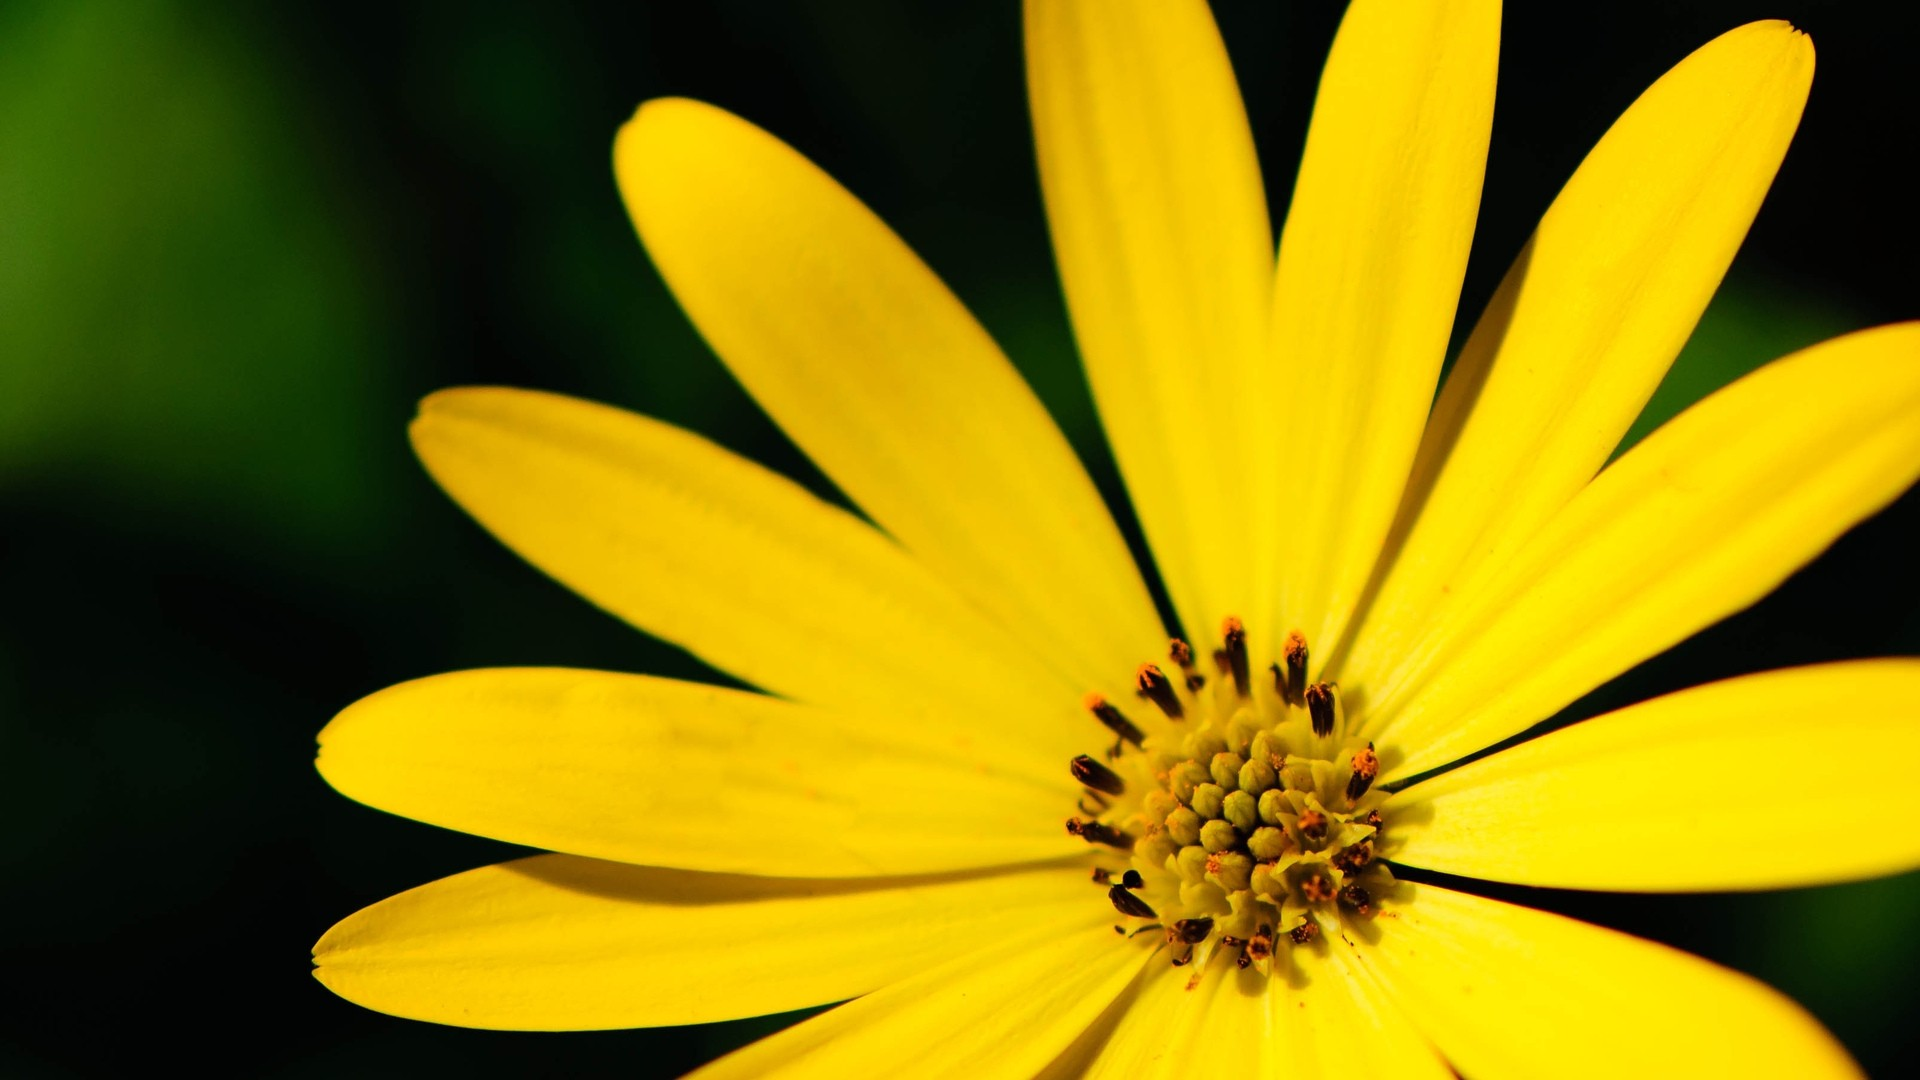 Yellow Flower Desktop wallpaper